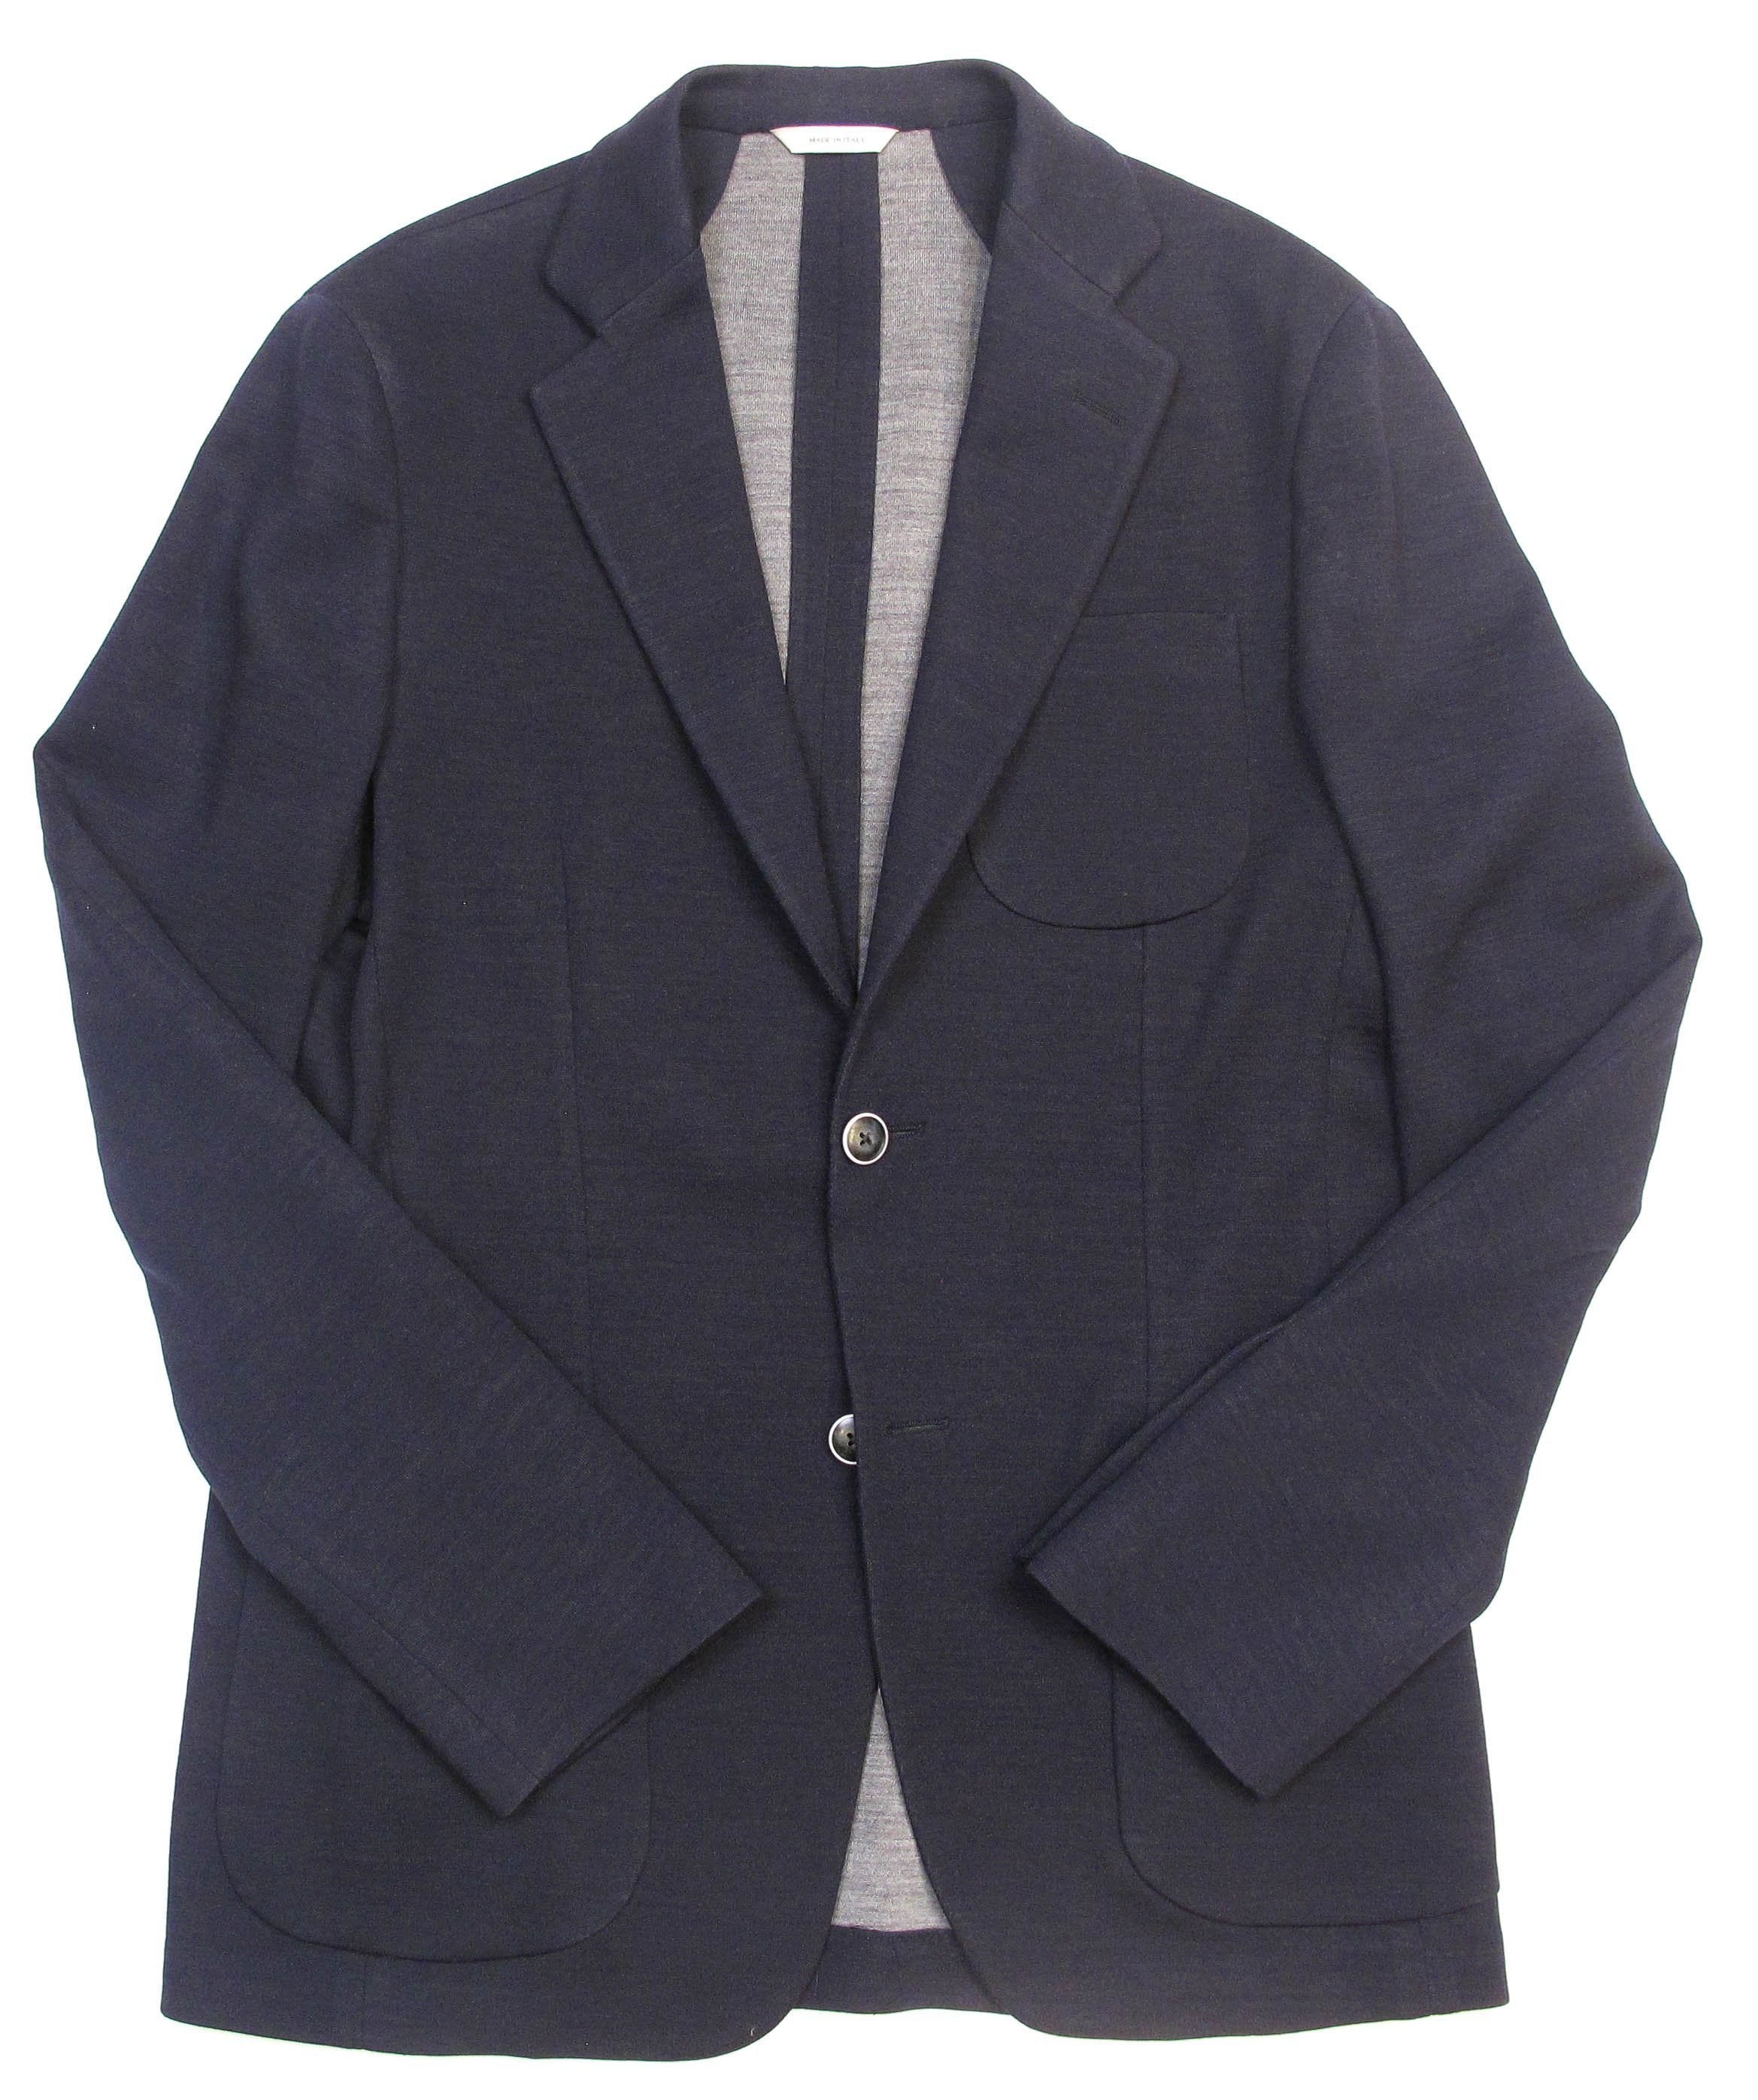 The Perfect Deconstructed Blazer - Navy